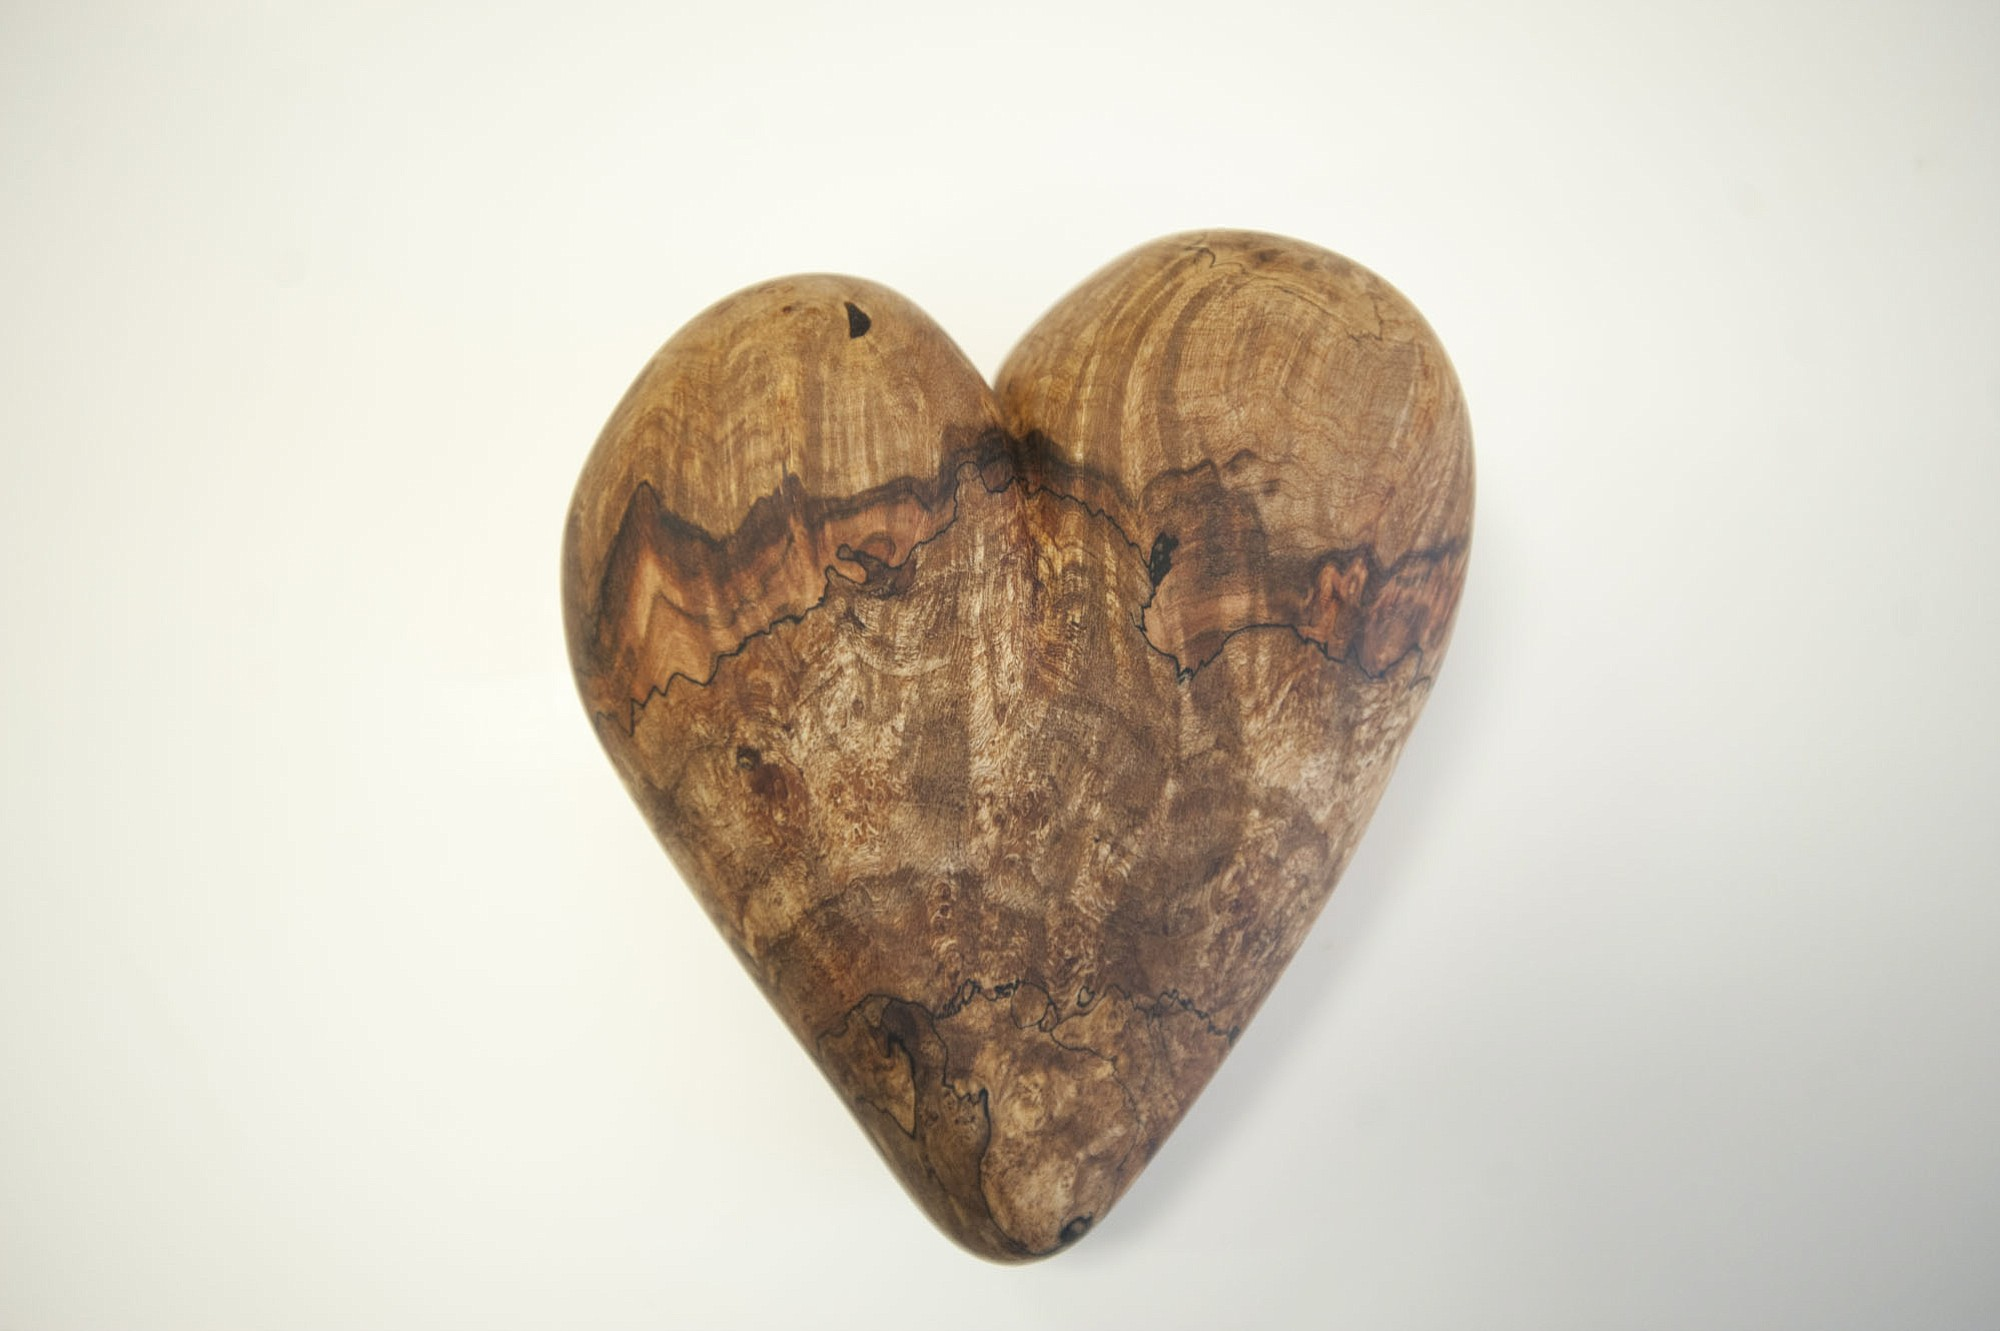 Max McBurnett crafted a wooden heart from an old maple burl.